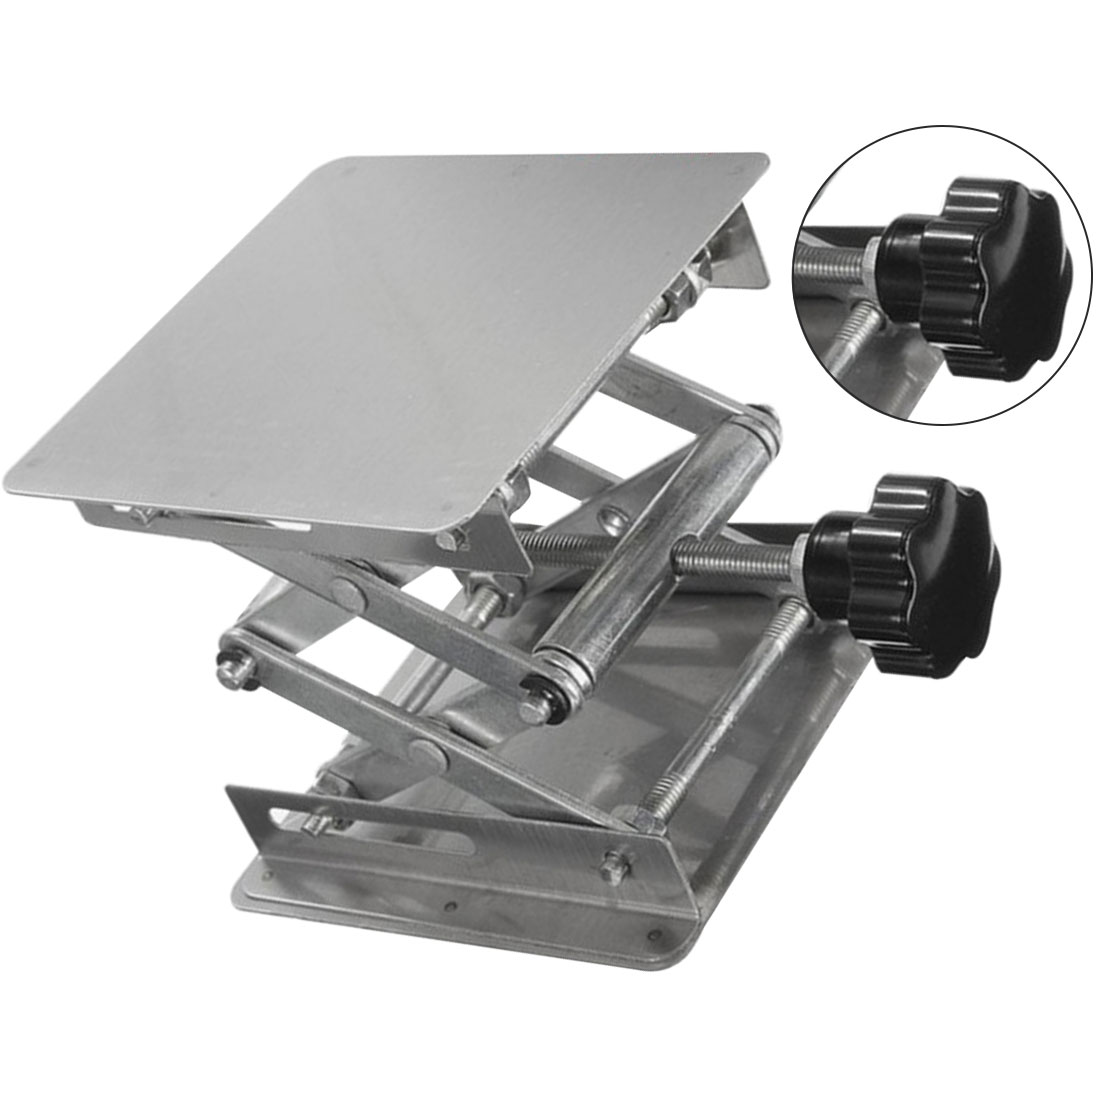 Stainless Steel Router Lift Table Woodworking Engraving Lab Lifting Stand Rack Lift Platform 100x100mm